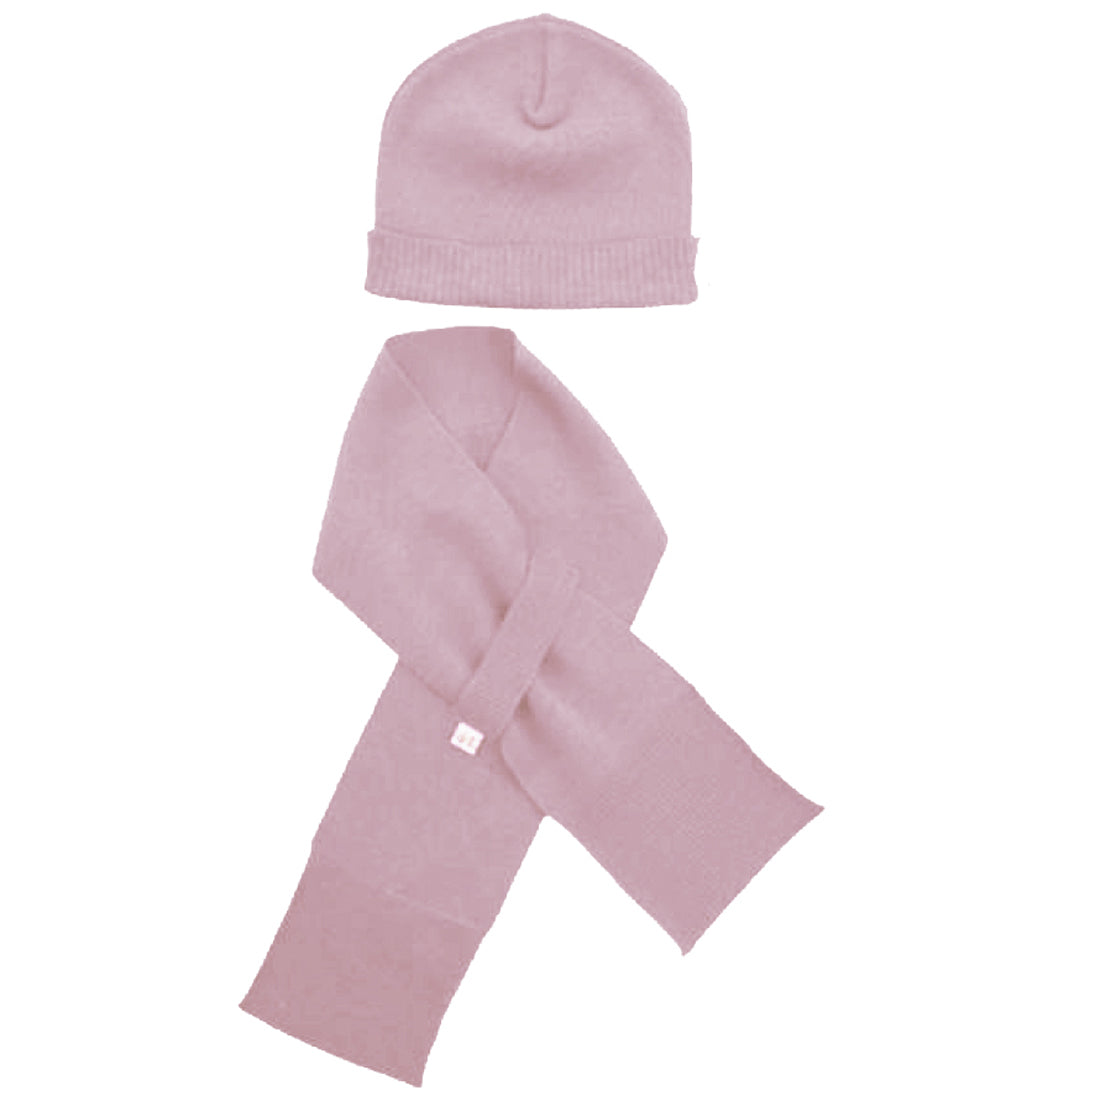 Merino Kids Hat and Scarf Set for Babies and Toddlers